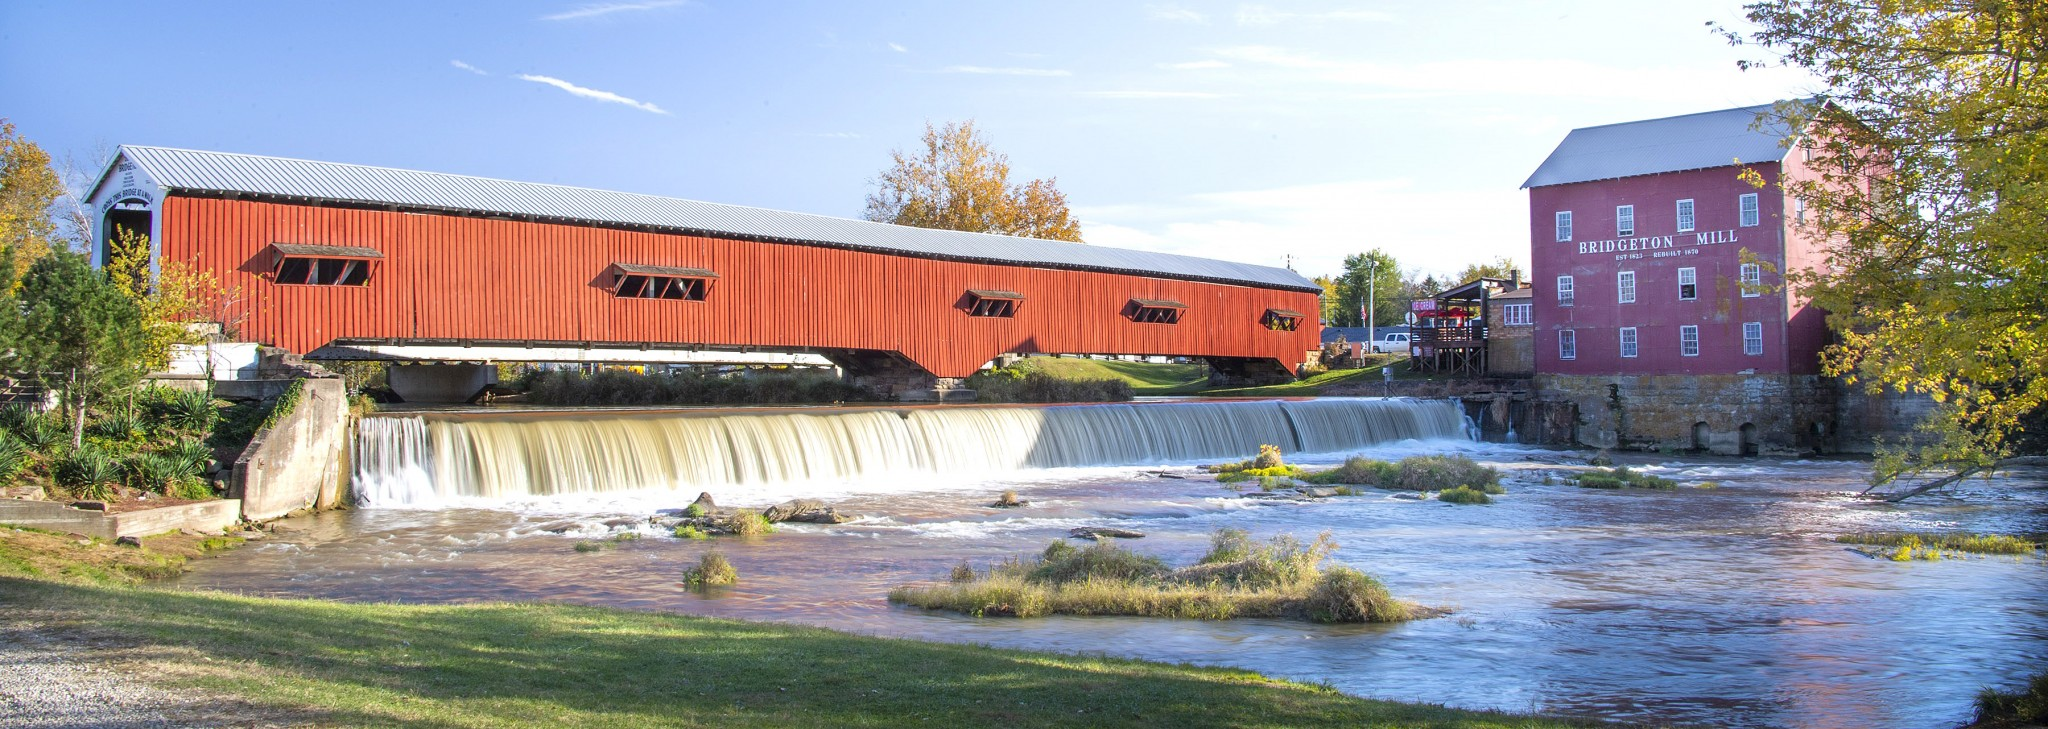 Jackson Bridge spans 207 feet over Sugar Creek, one of 31 covered bridges in Parke County, Indiana.  (Photo by Art Weber)